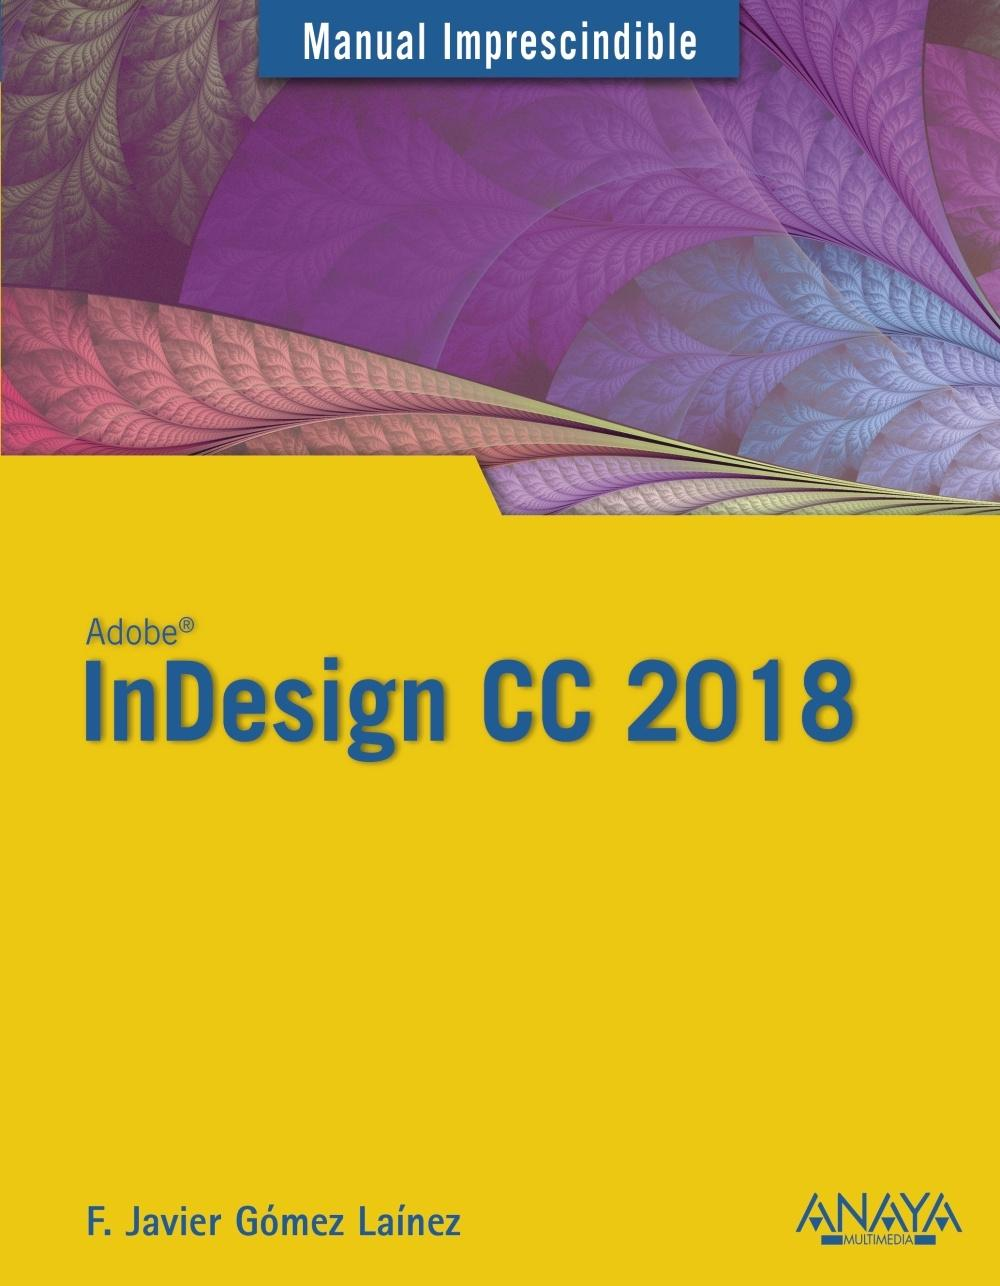 InDesign CC 2018. Manual imprescindible | Librería Fragua